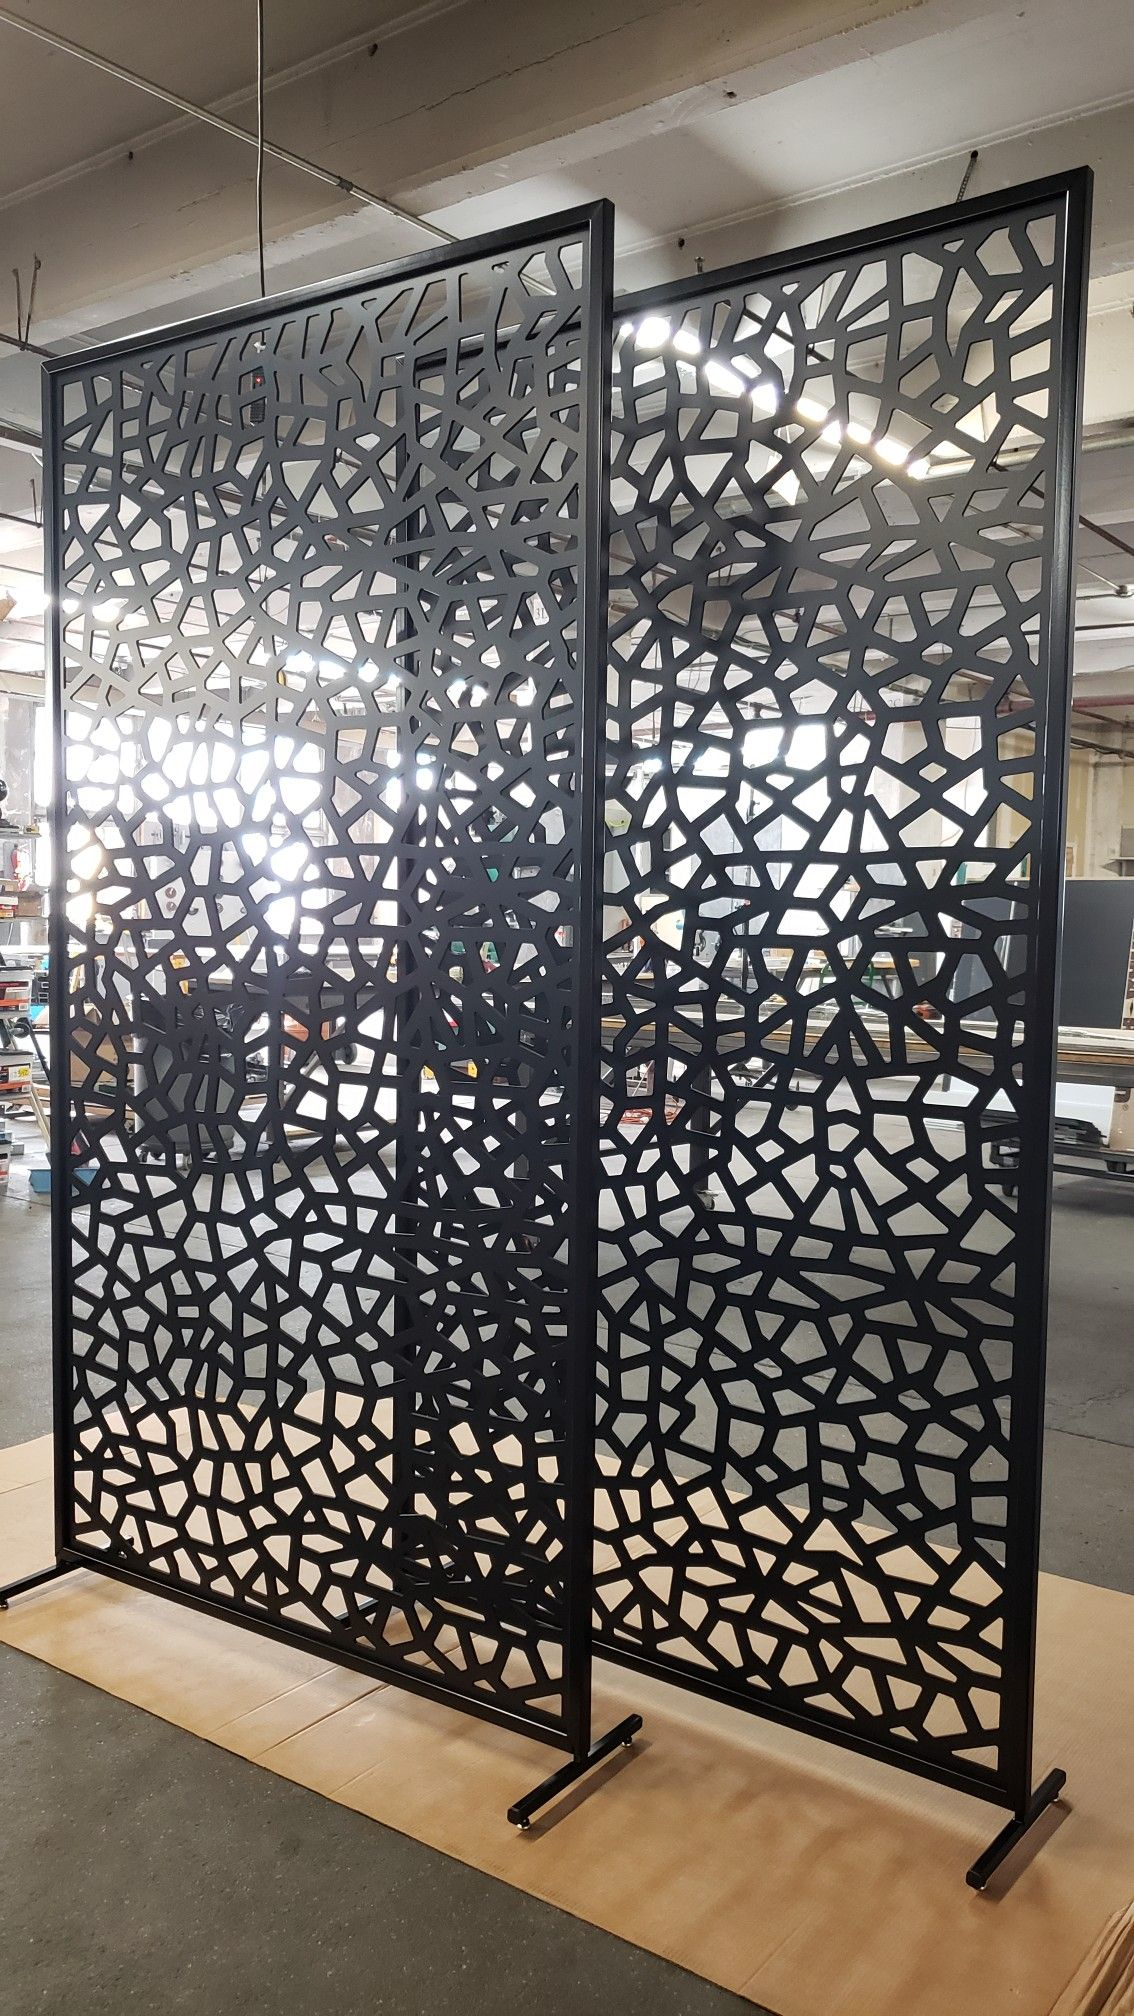 Room Dividers And Decorative Privacy Screens Custom Made To Order Ideas To Divide Space In Office Or Dressing Room Design Modern Room Divider Lasercut Design